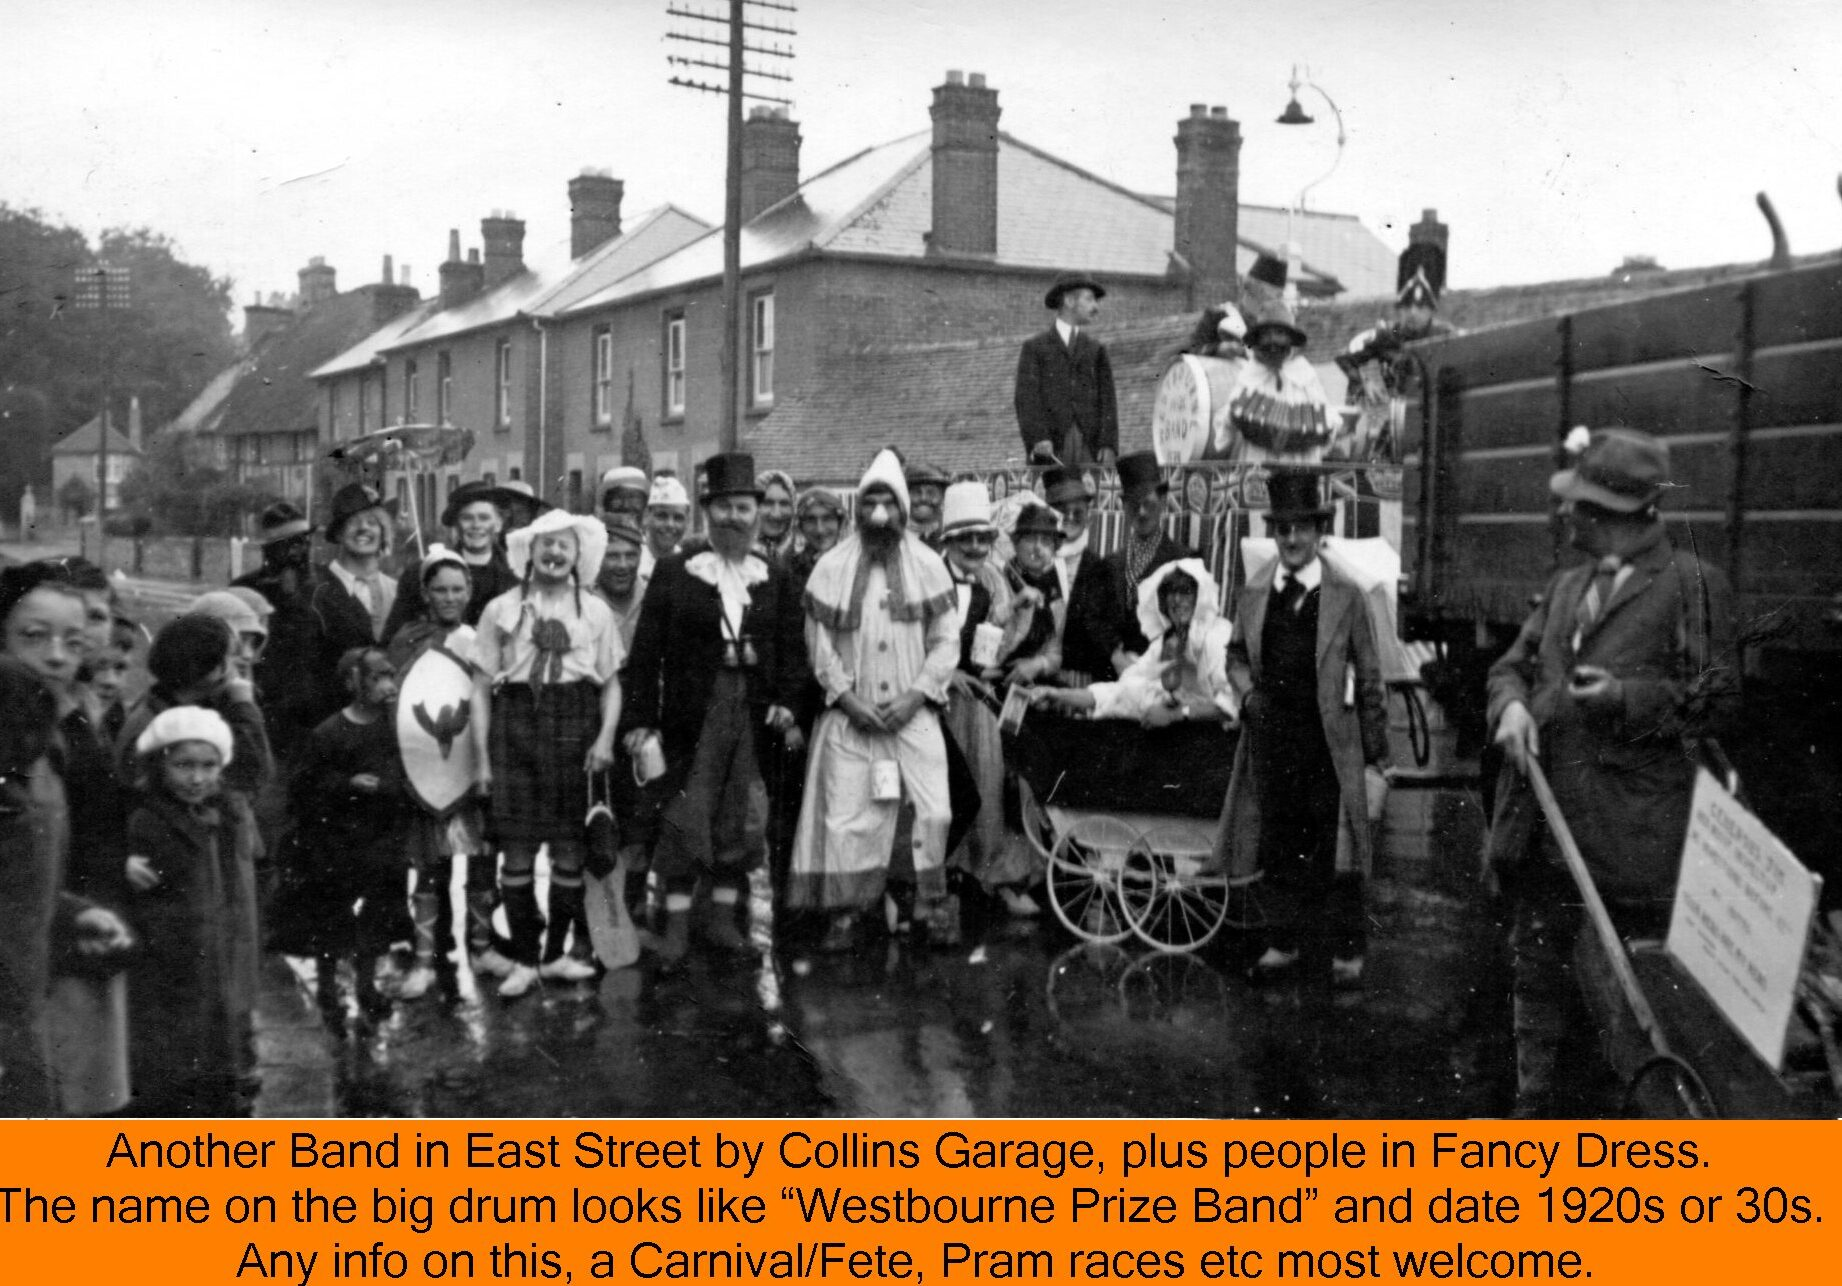 WESTBOURNE HISTORY PHOTO, PRIZE BAND, FANCY DRESS, CARNIVAL, FETE, COLLINS GARAGE, EAST STREET